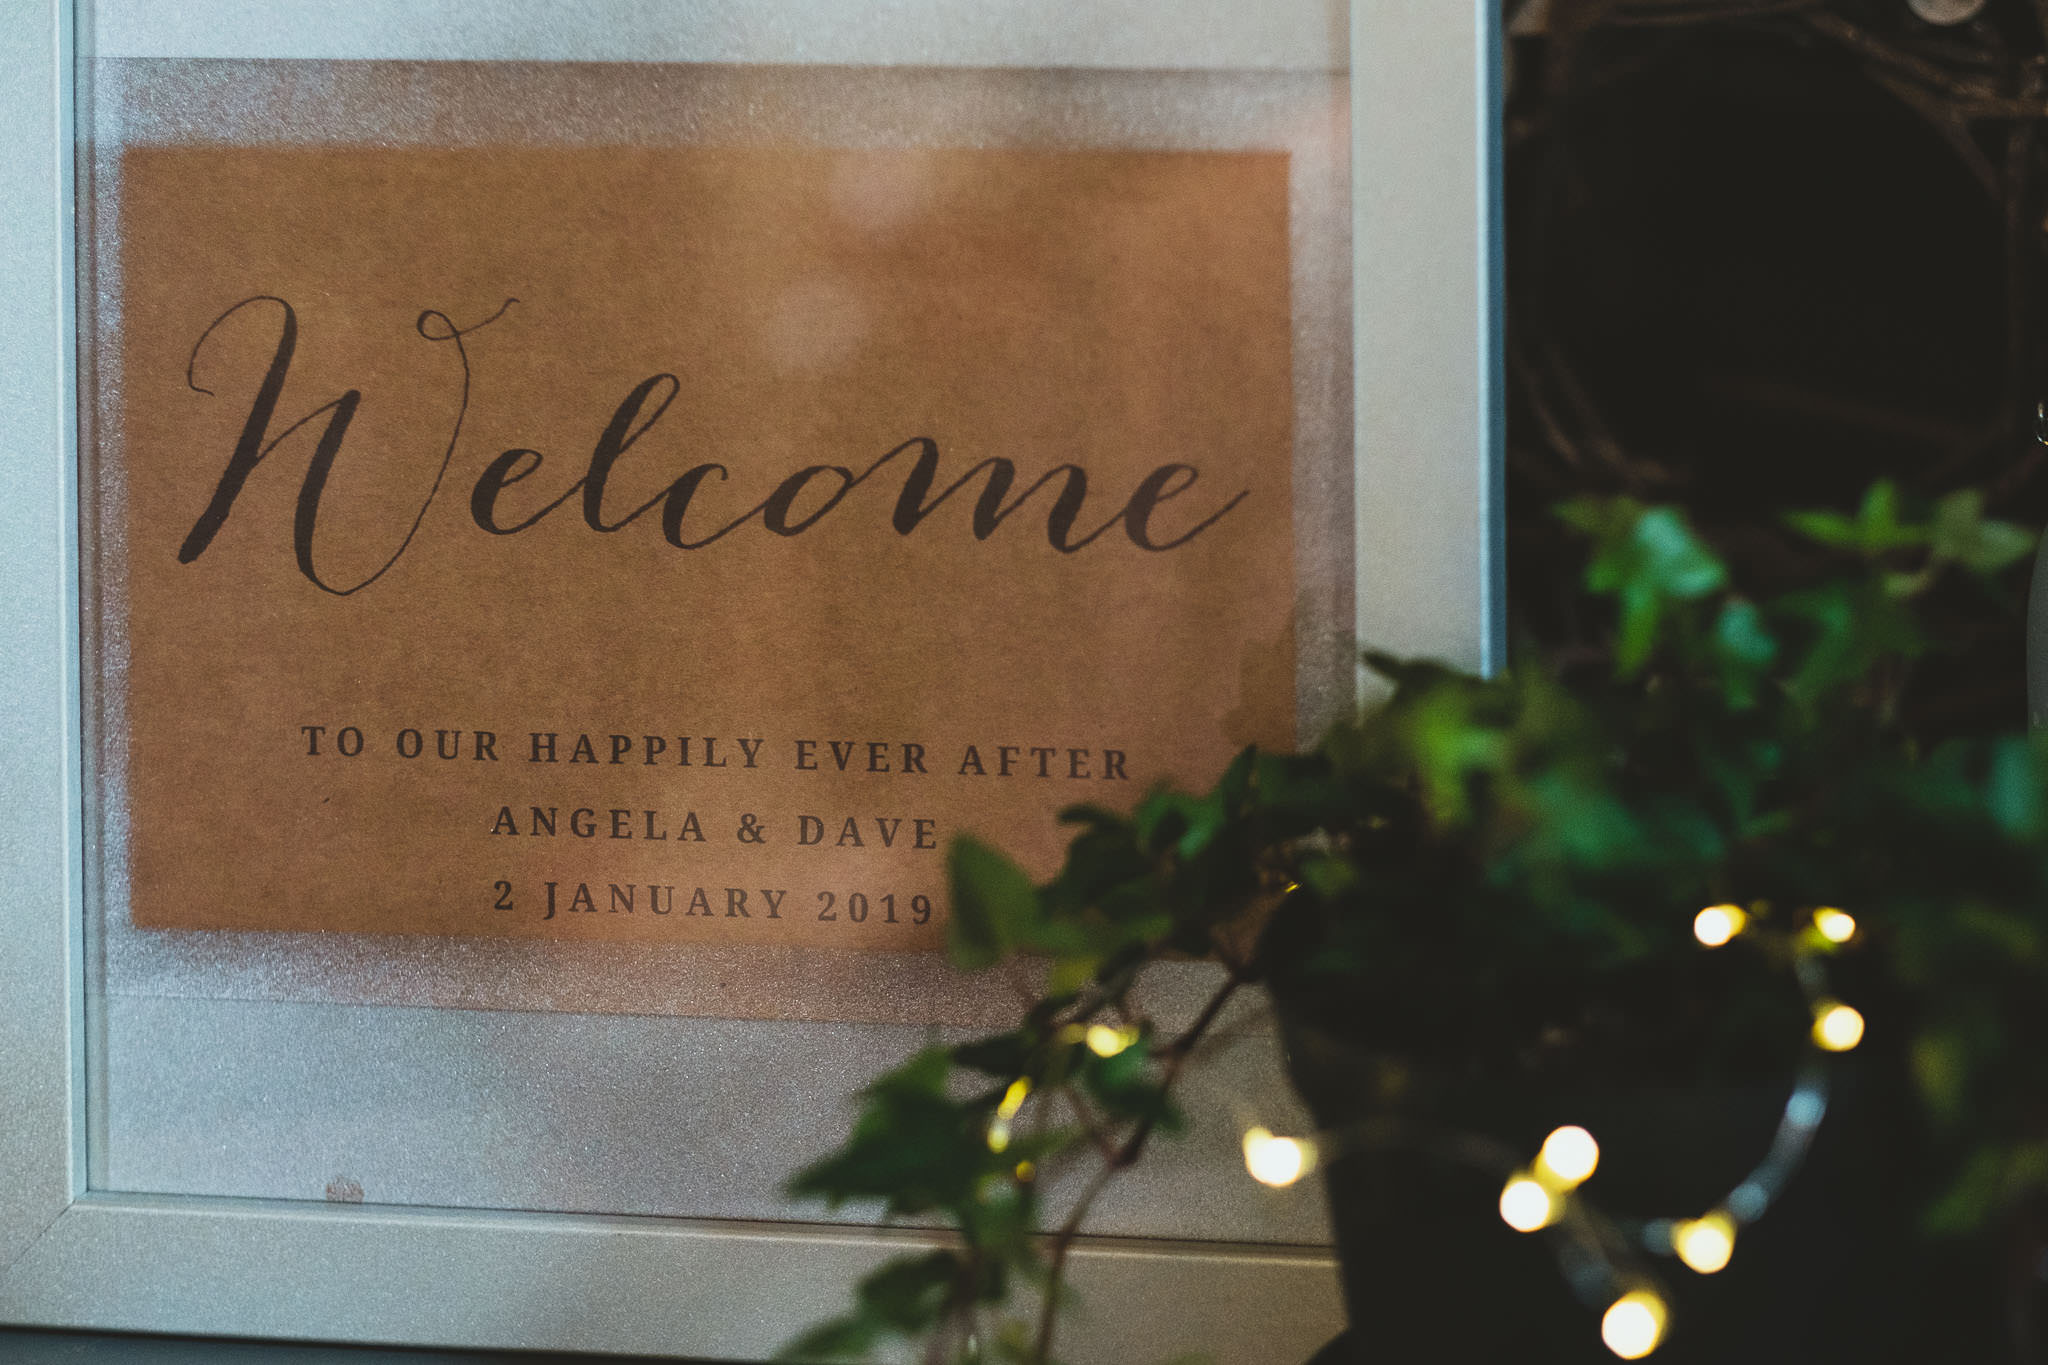 Wedding welcome sign at Newcastle wedding venue